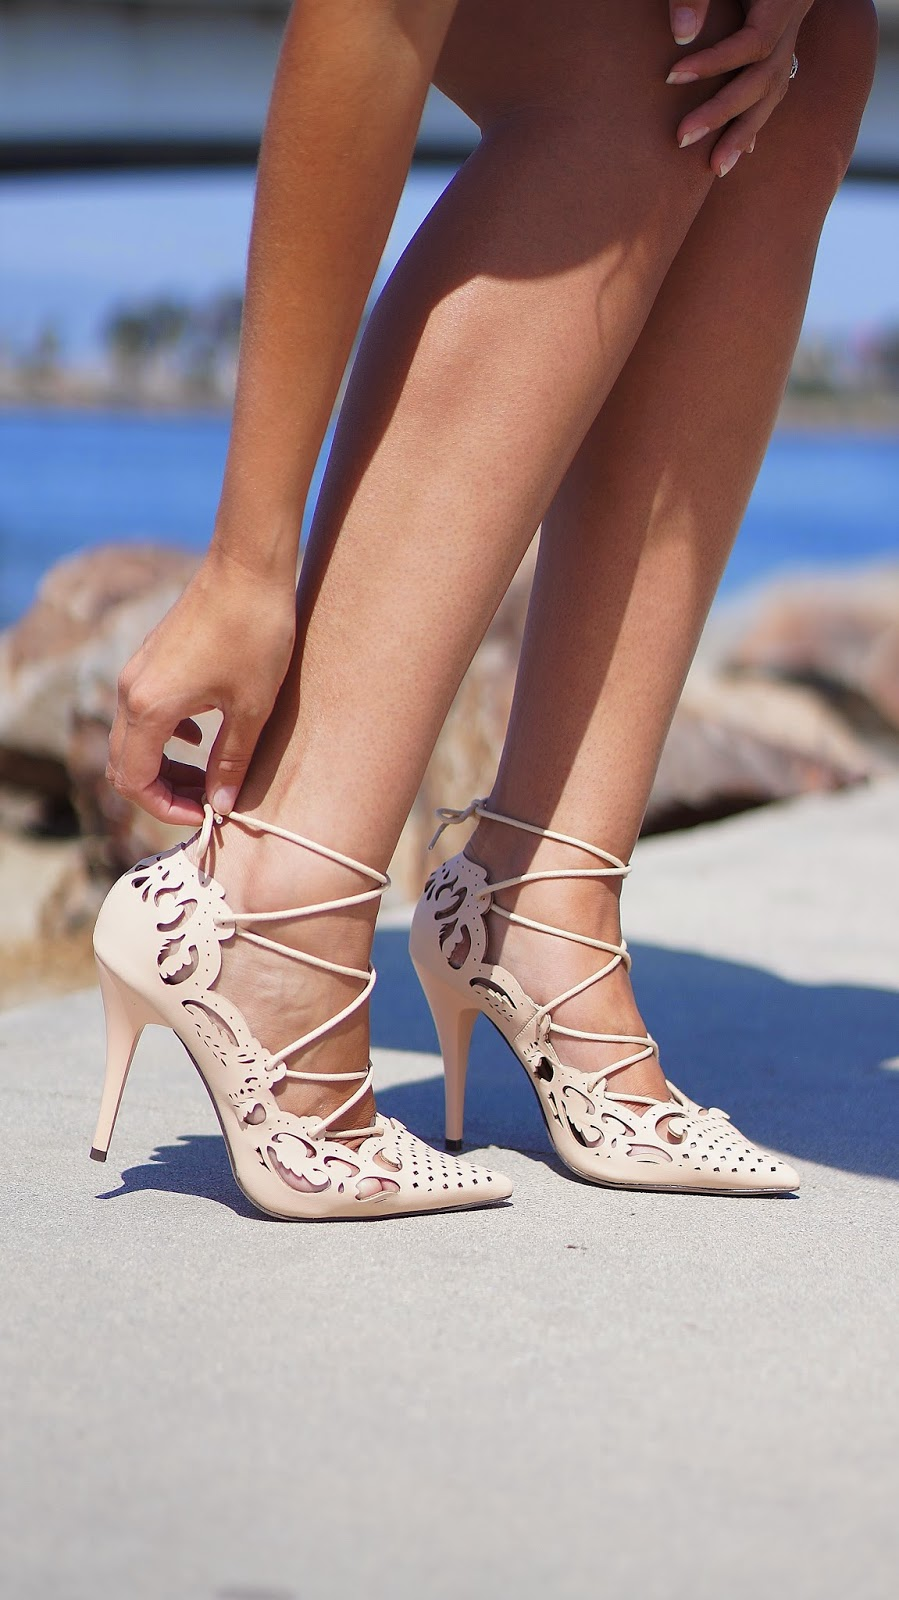 Little White Dress, White Summer Dress, Louboutin Inspired Laser Cut Heels, Flower Hair Accessorie